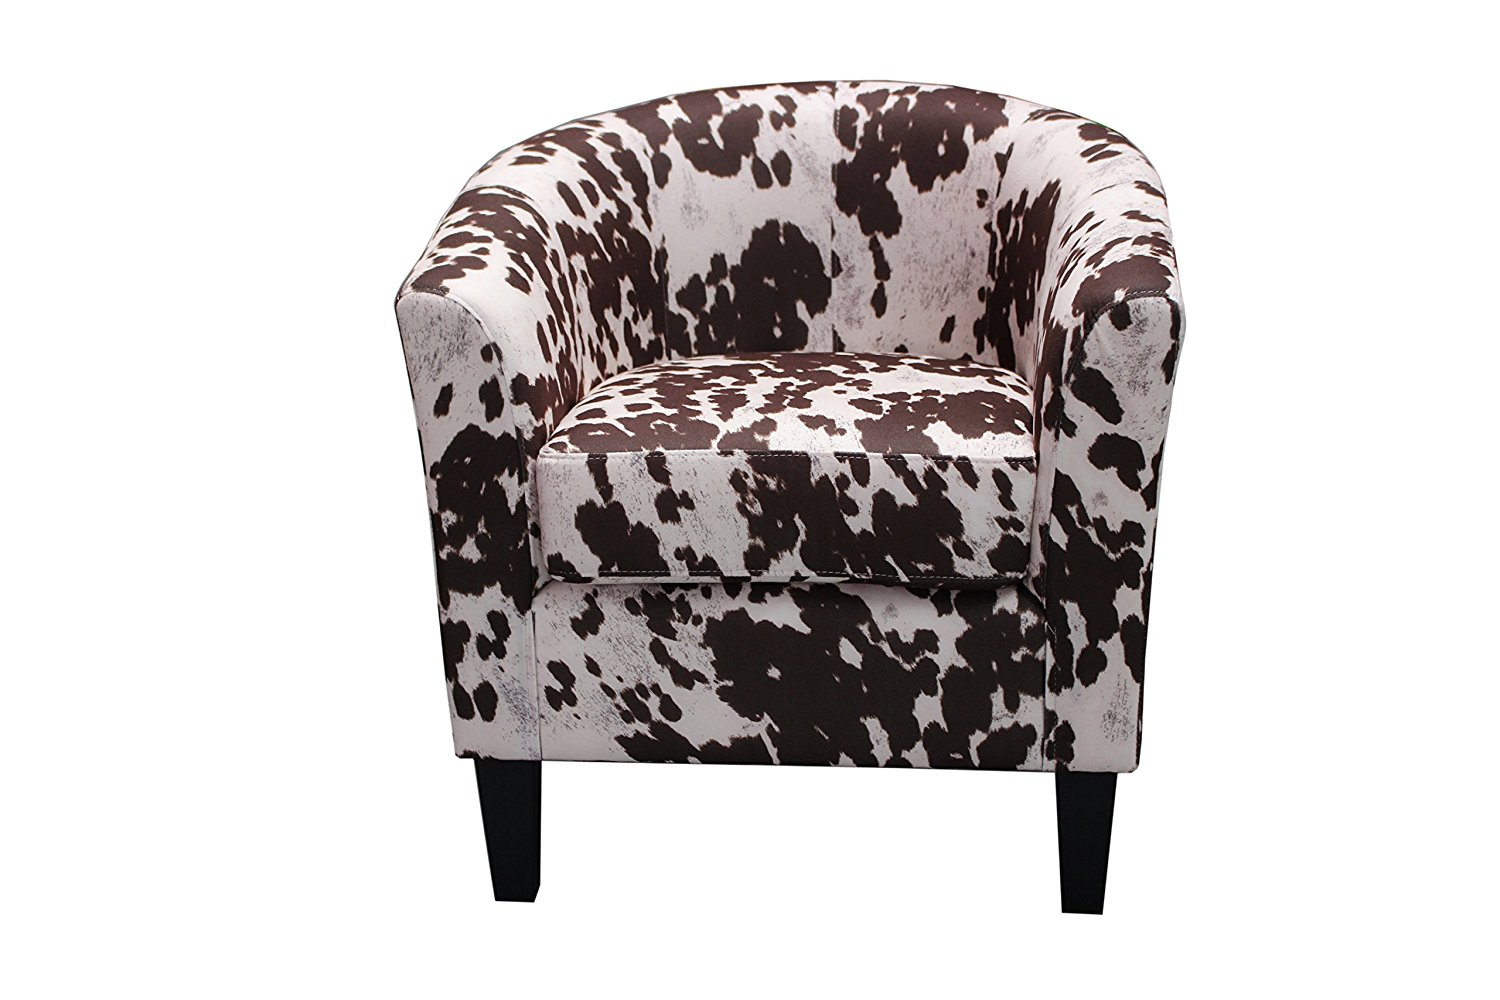 Container Furniture Direct Aisley Collection Traditional Classic Upholstered Cowhide Patterned Fabric Barrel Back Living Room Accent Arm Chair, Dark Grey